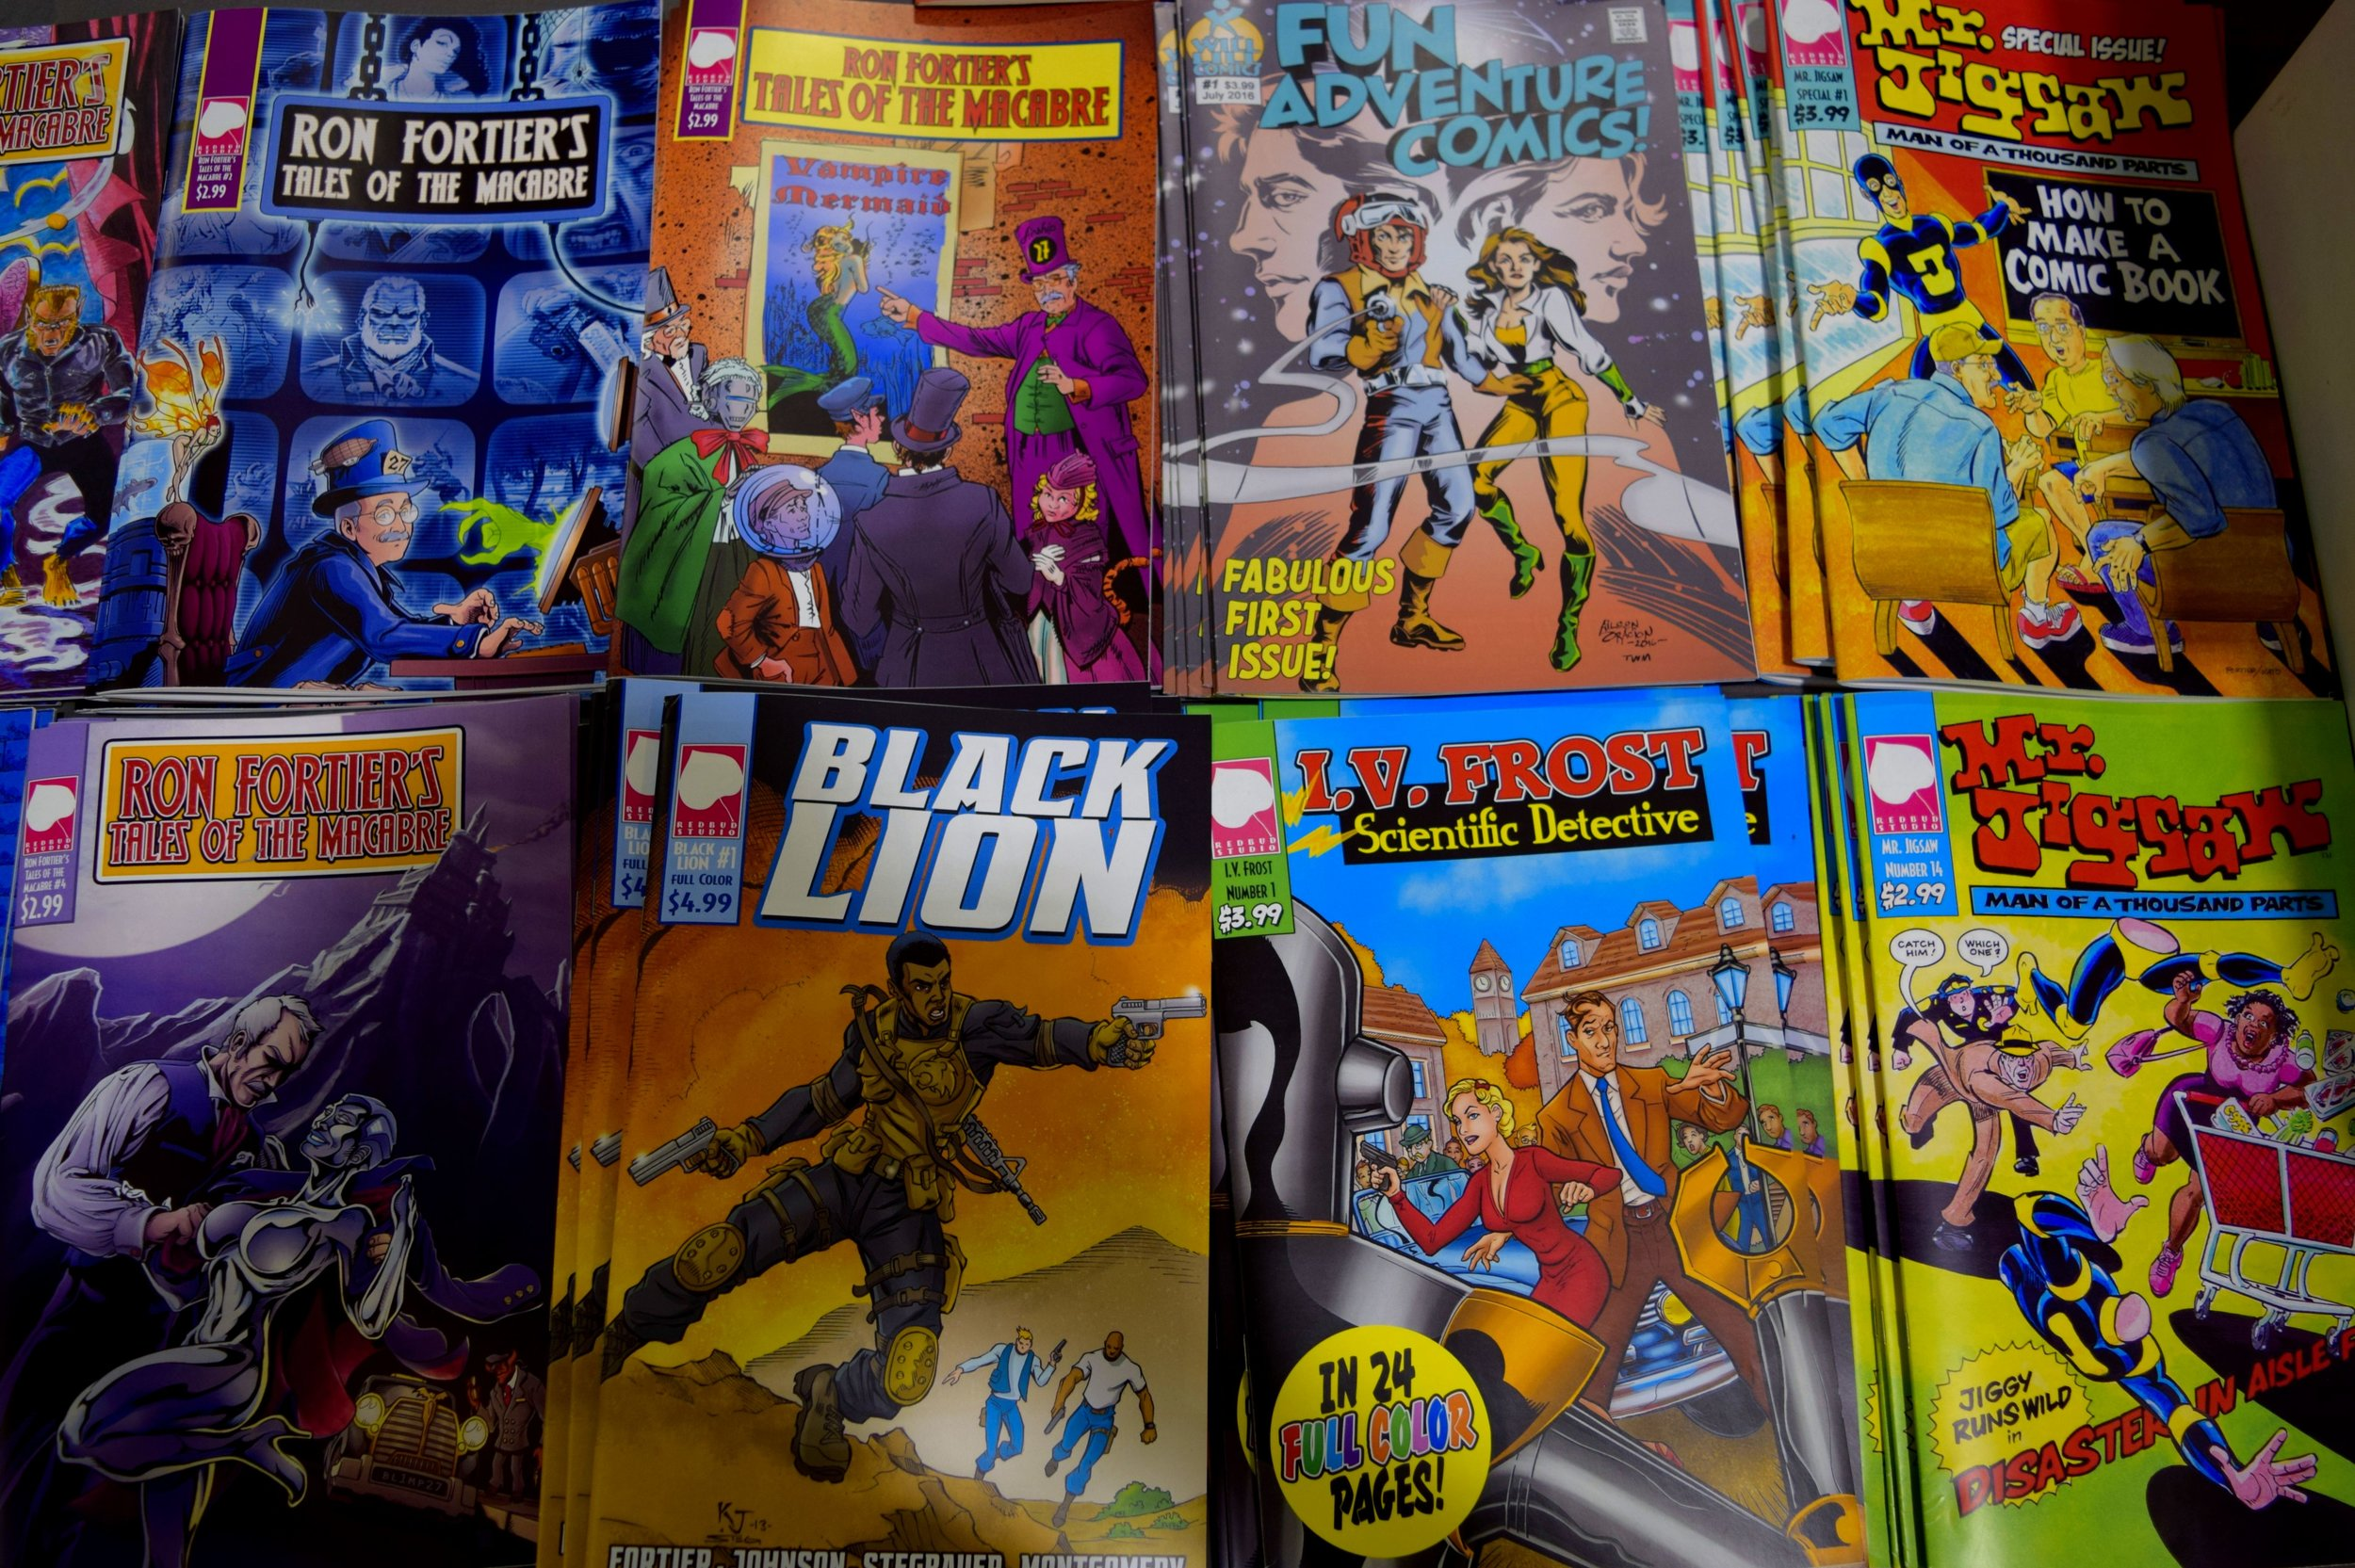 More comics from Ron Fortier at Fort Collins Comic Con 2016.